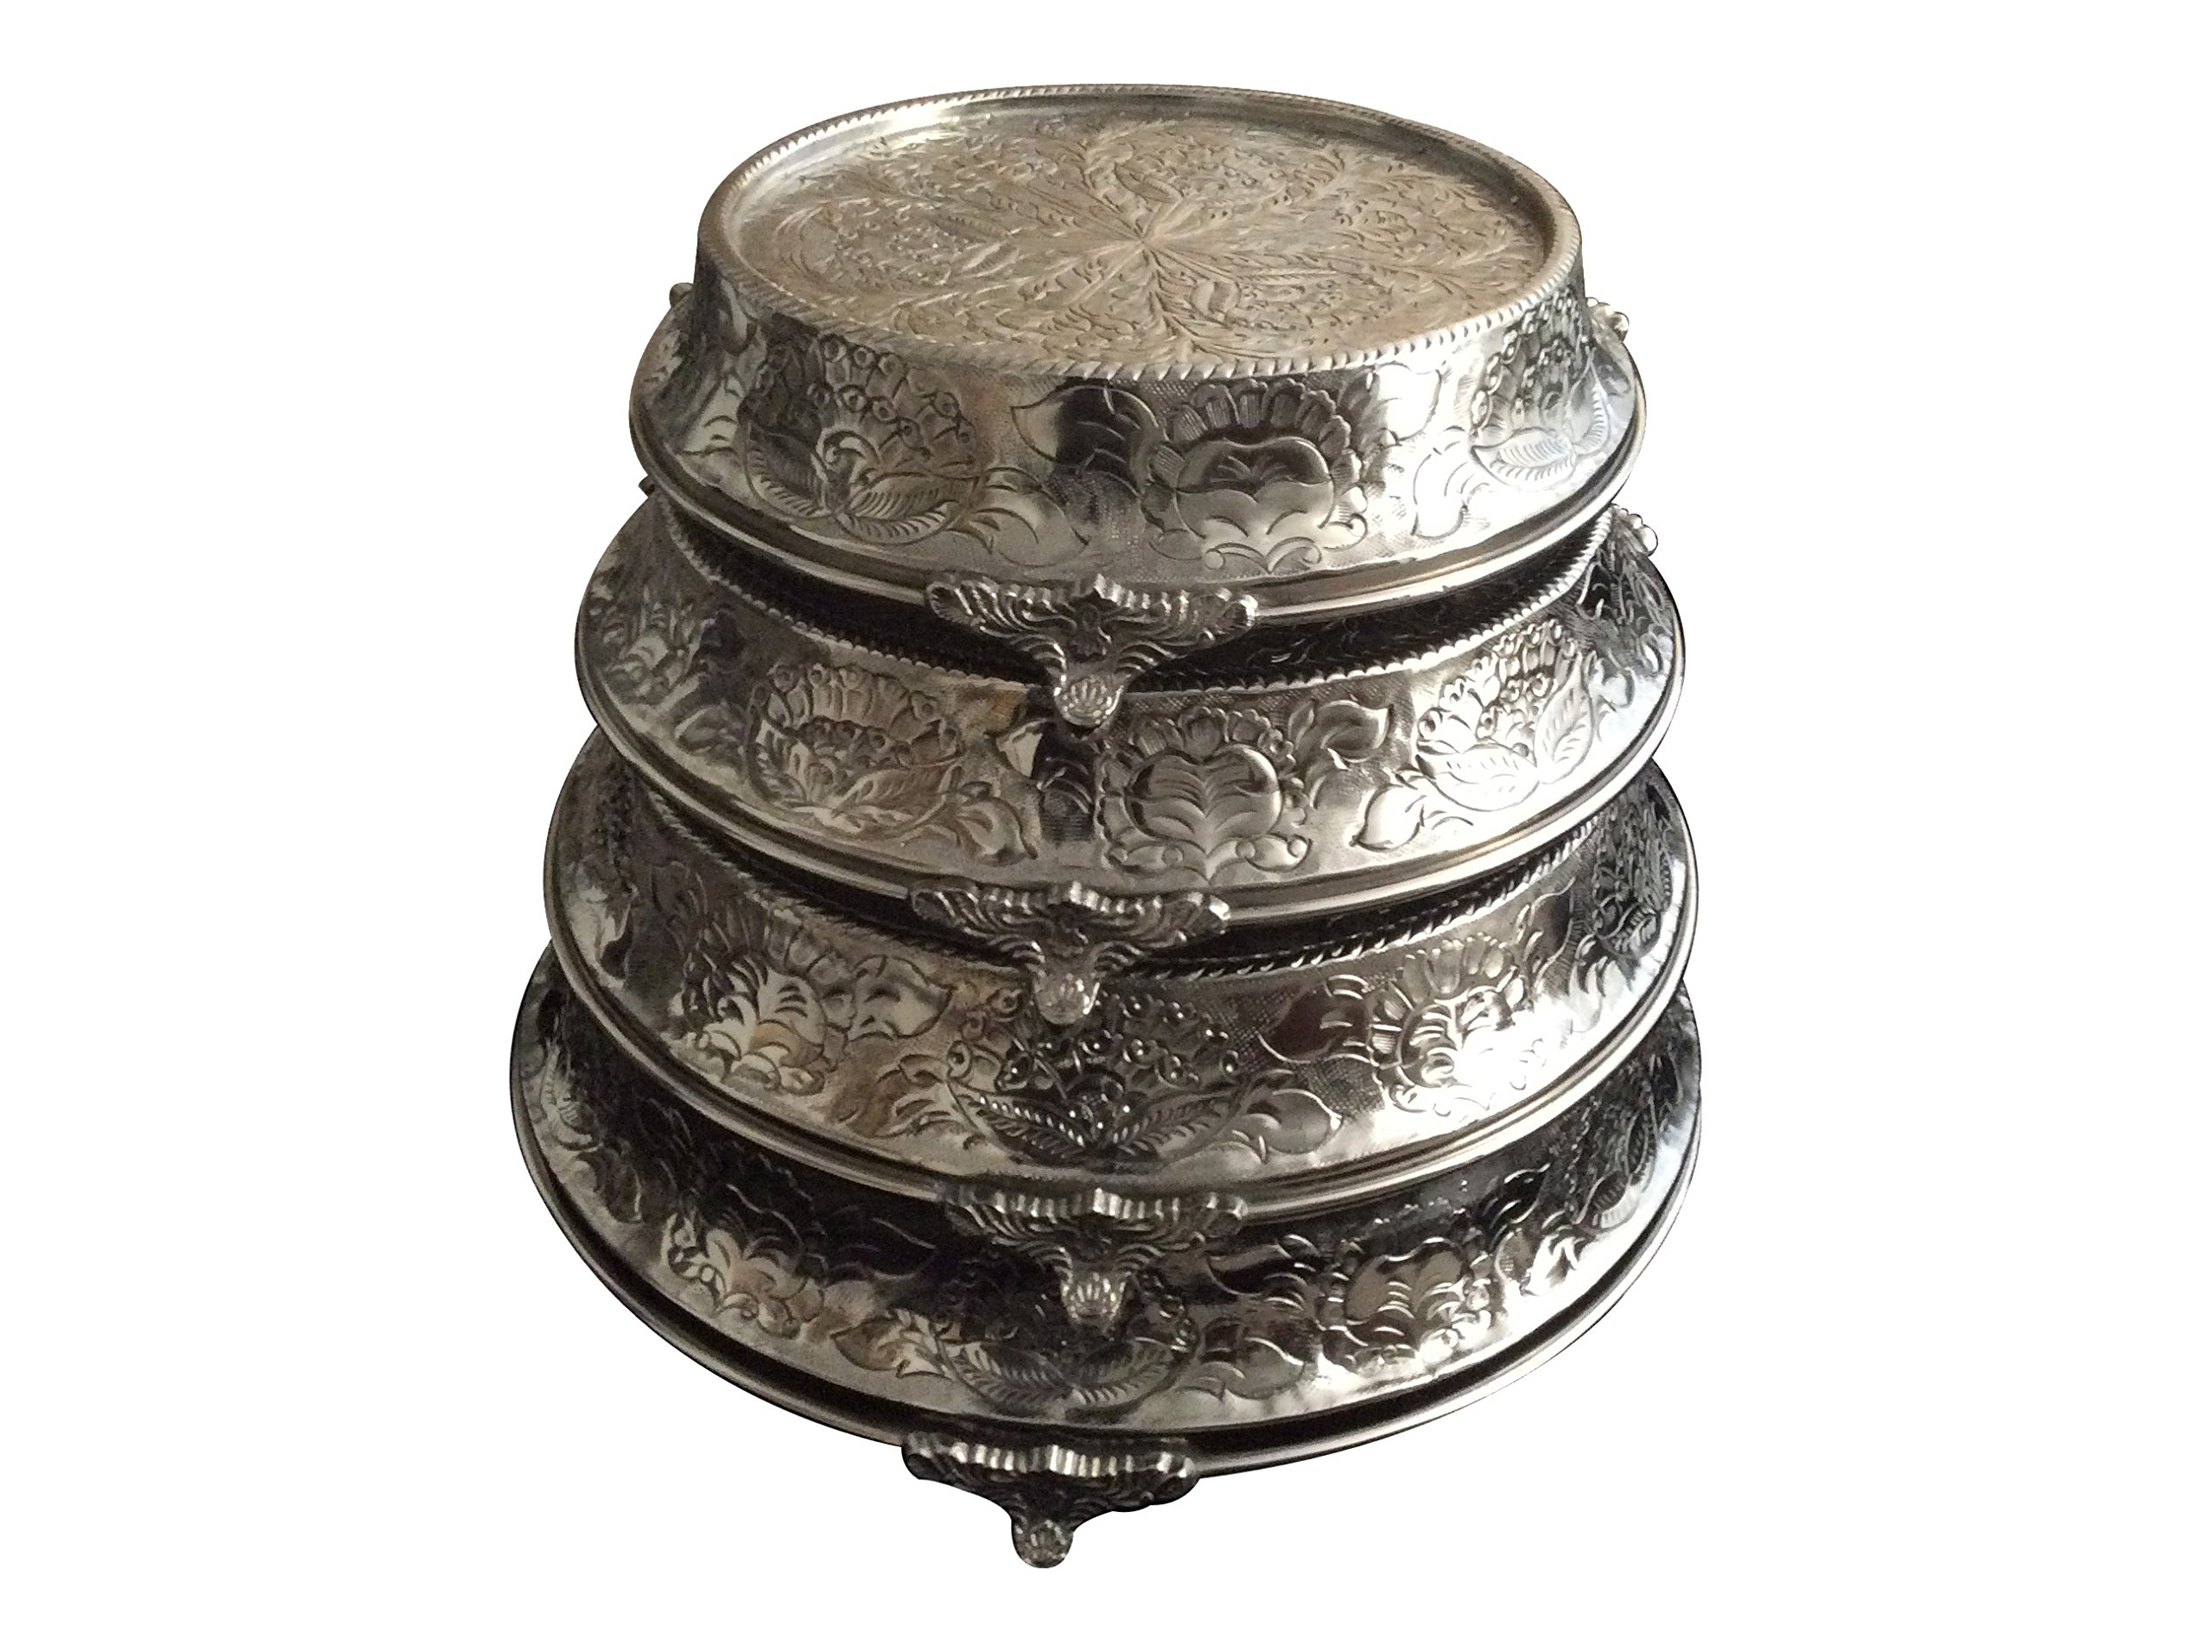 GiftBay Wedding Cake Stand Tapered Round Set of 4, Size 12'', 14'', 16'' & 18'' Strongly Built For Proessional Bakers